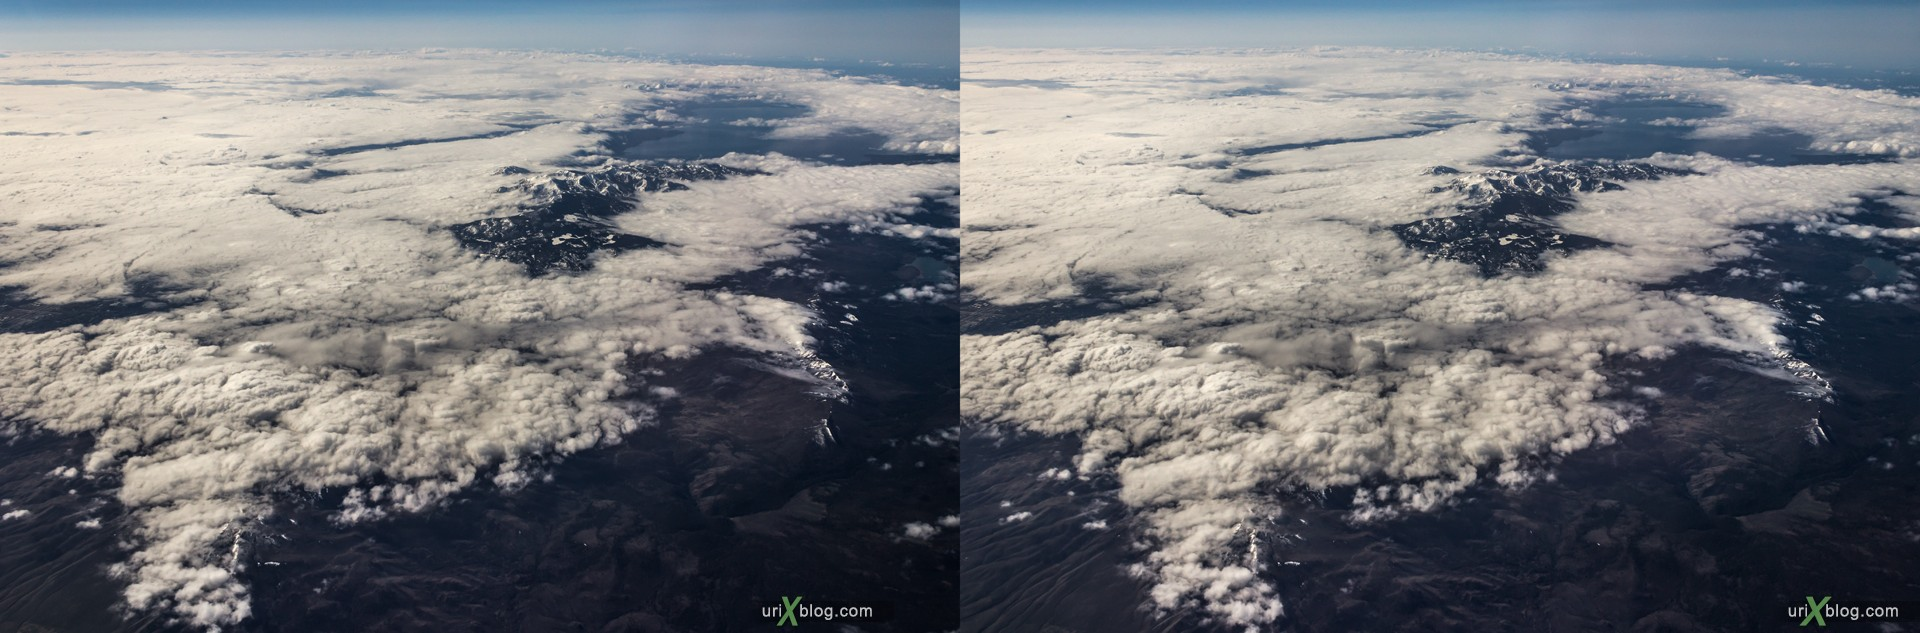 2013, California, Rocky mountains, USA, panorama, airplane, black and white, bw, snow, ice, clouds, horizon, 3D, stereo pair, cross-eyed, crossview, cross view stereo pair, stereoscopic